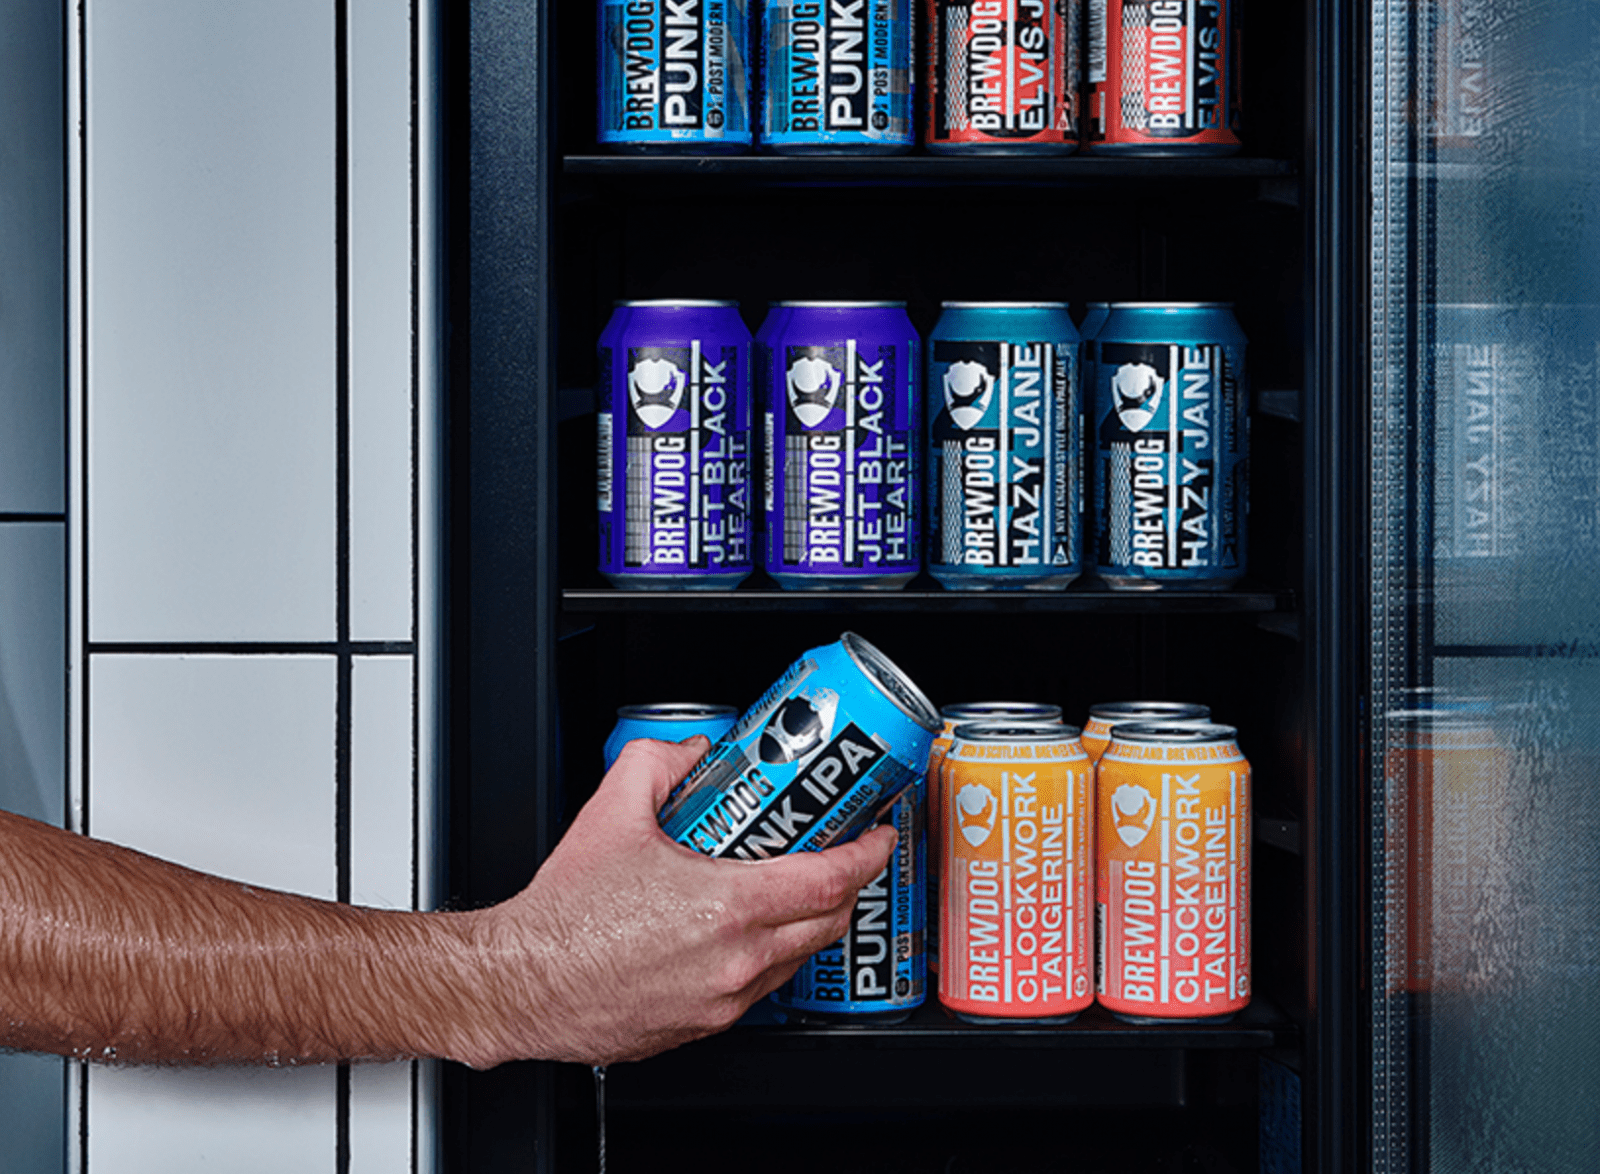 BrewDog's Manchester hotel with shower fridges and room beer taps opens tomorrow, The Manc